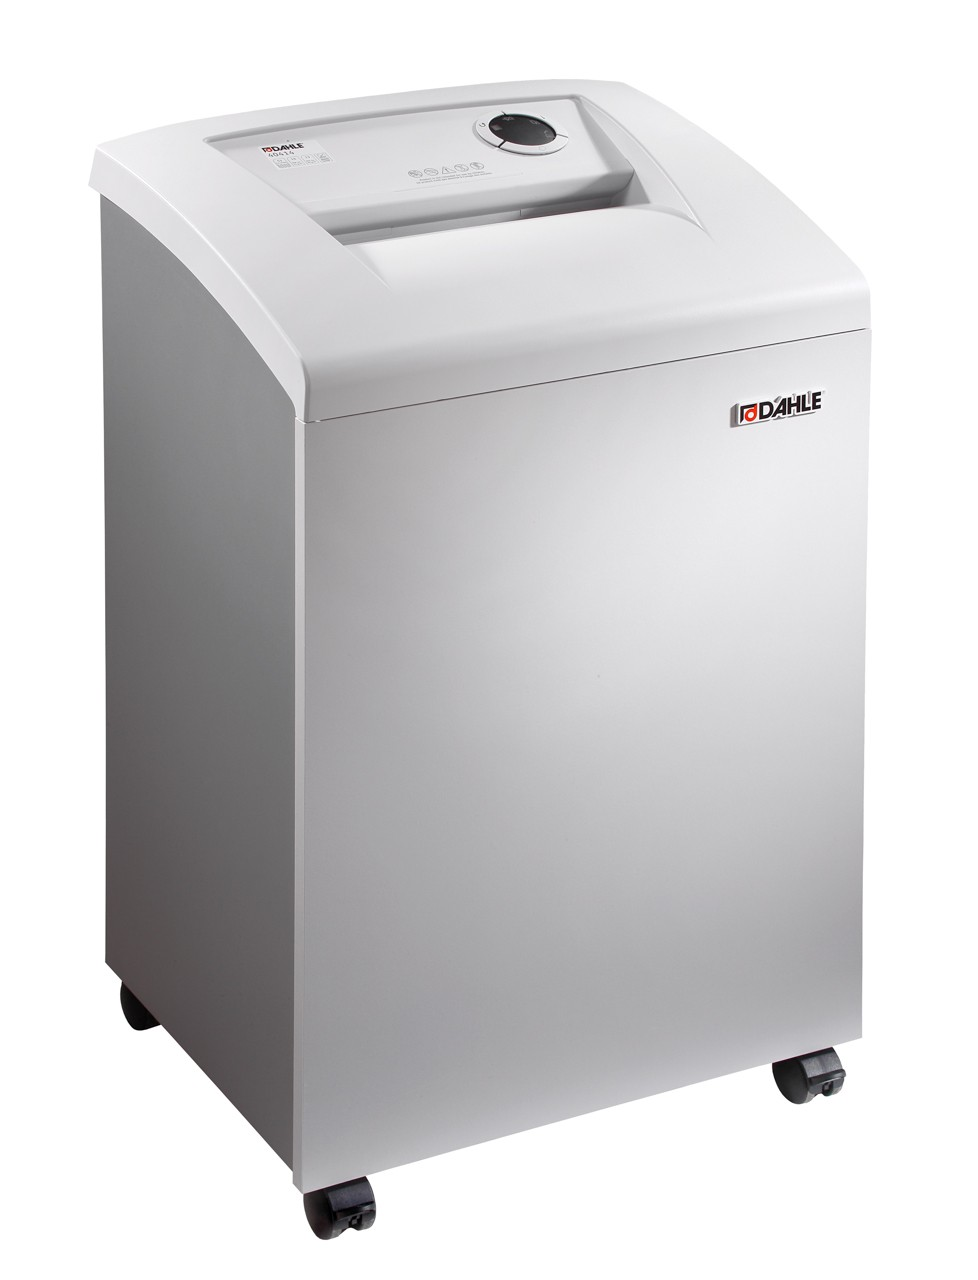 Dahle 40434 NSA/CSS 02-01 Approved High Security Cross-Cut Shredder - 30 Gallon